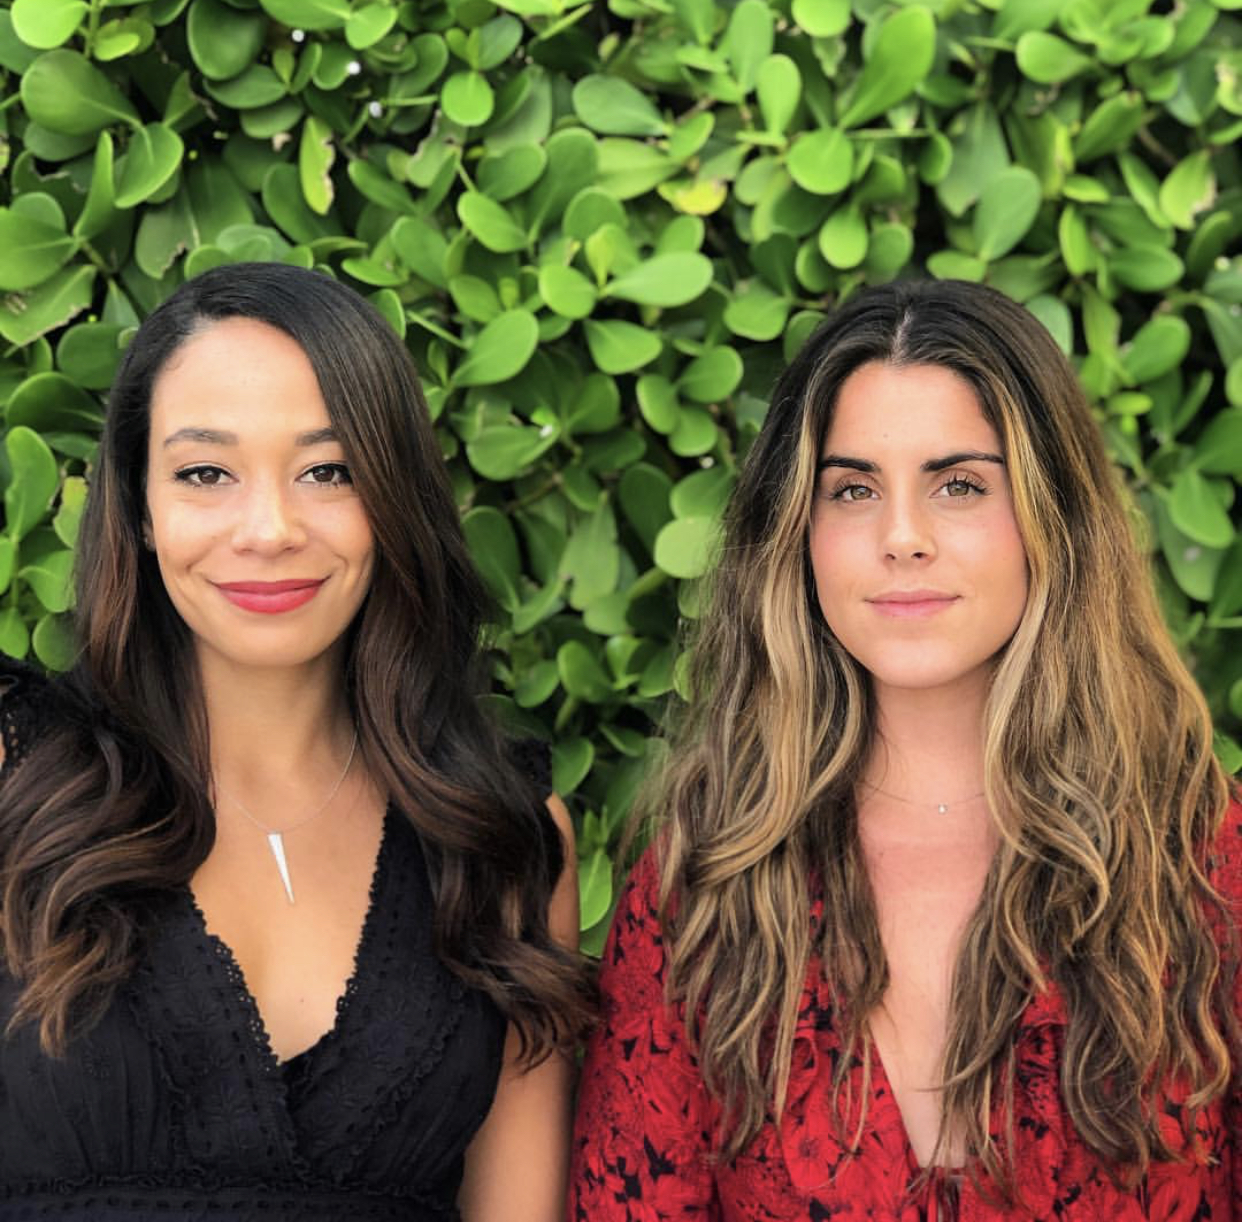 Ella Barnette (left) and Linsey Tambone (right) after a styling event at Alice and Olivia in West Palm Beach, Florida. February 2019